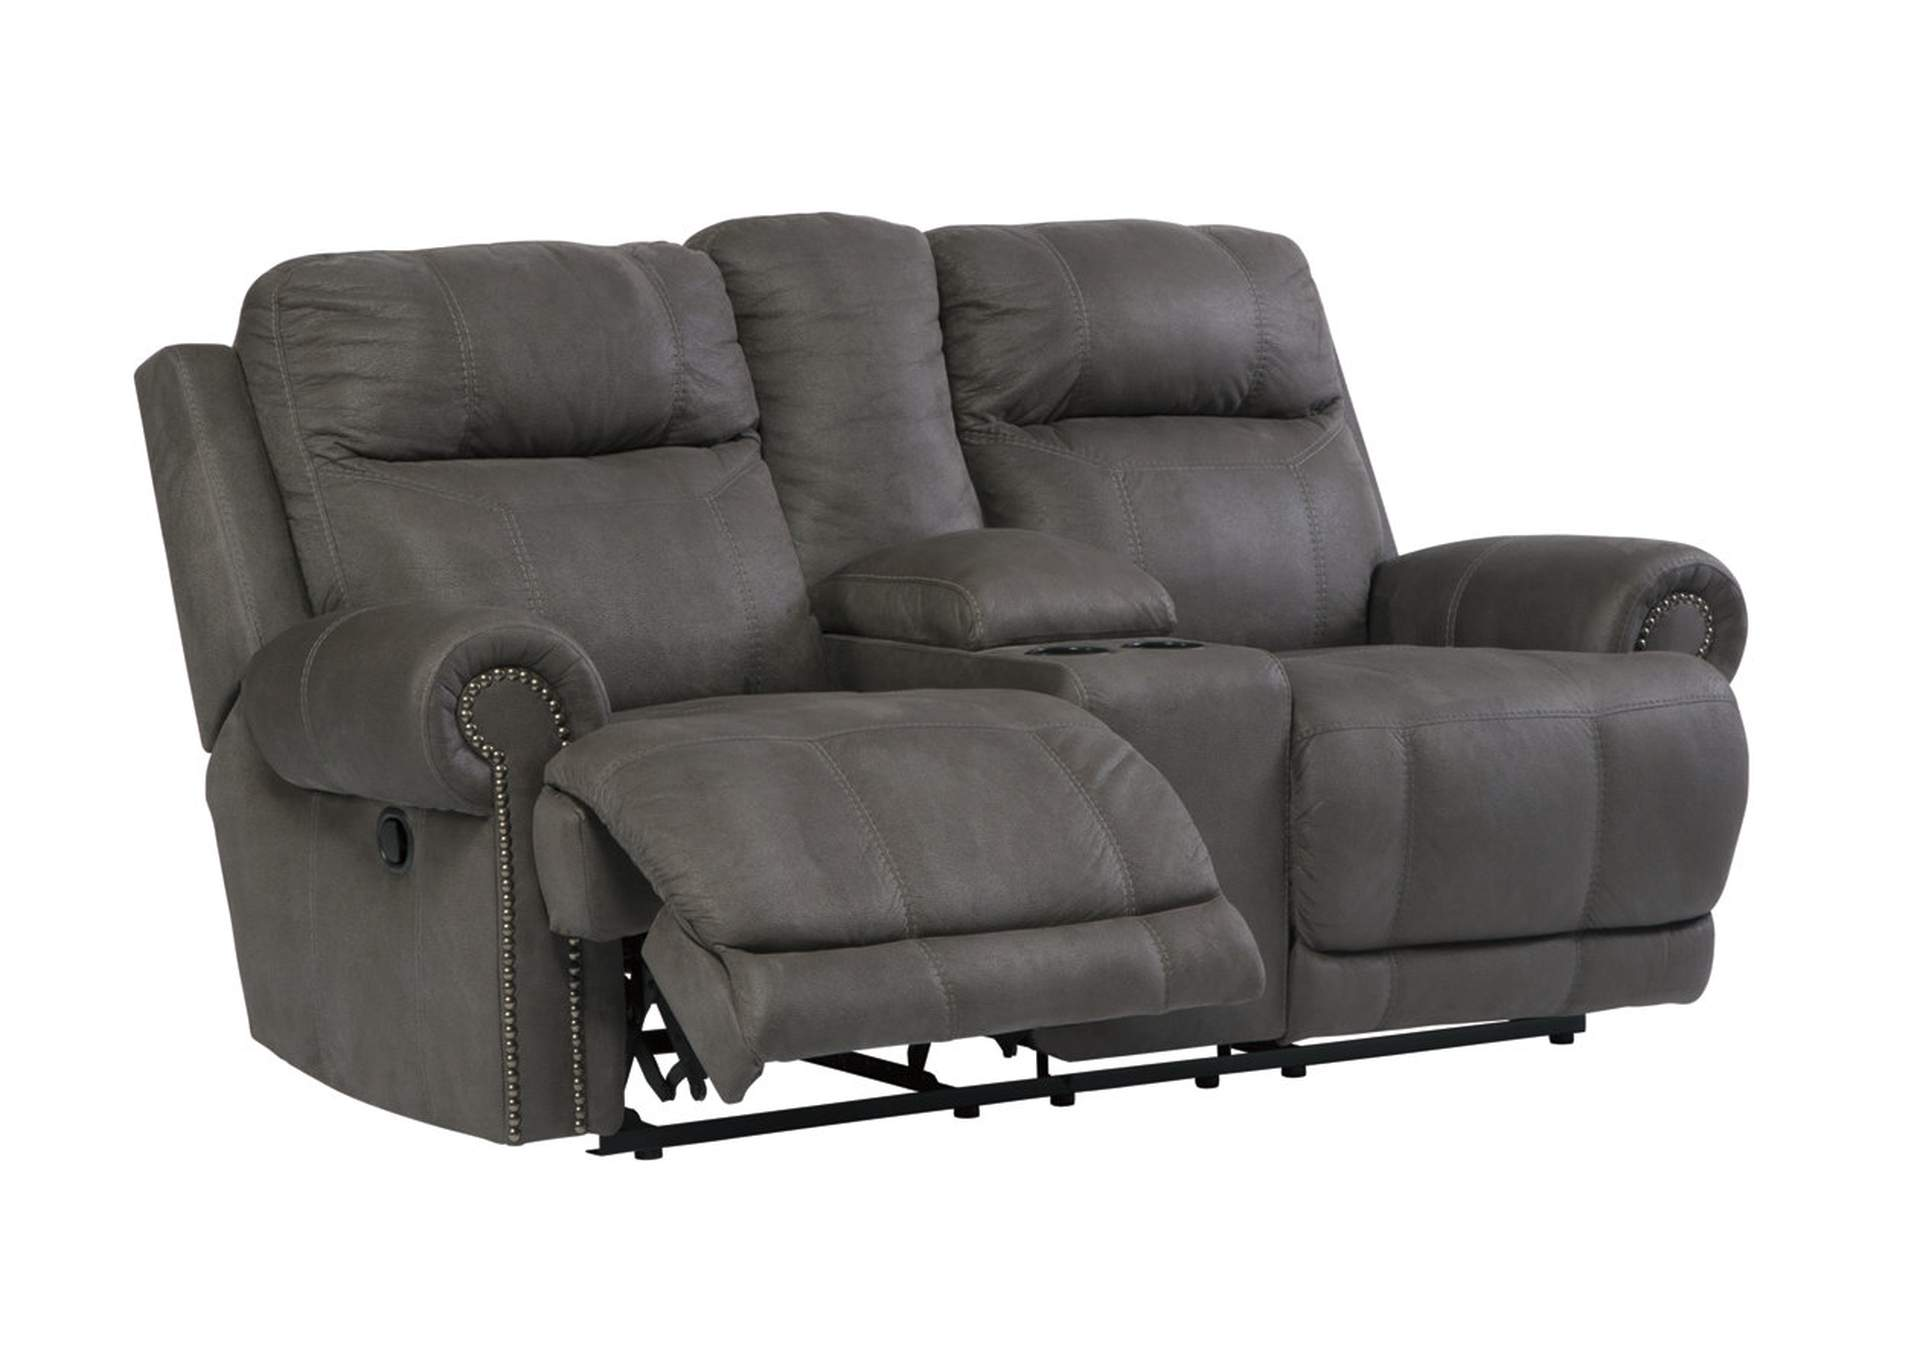 Austere Gray Double Reclining Loveseat,Signature Design By Ashley